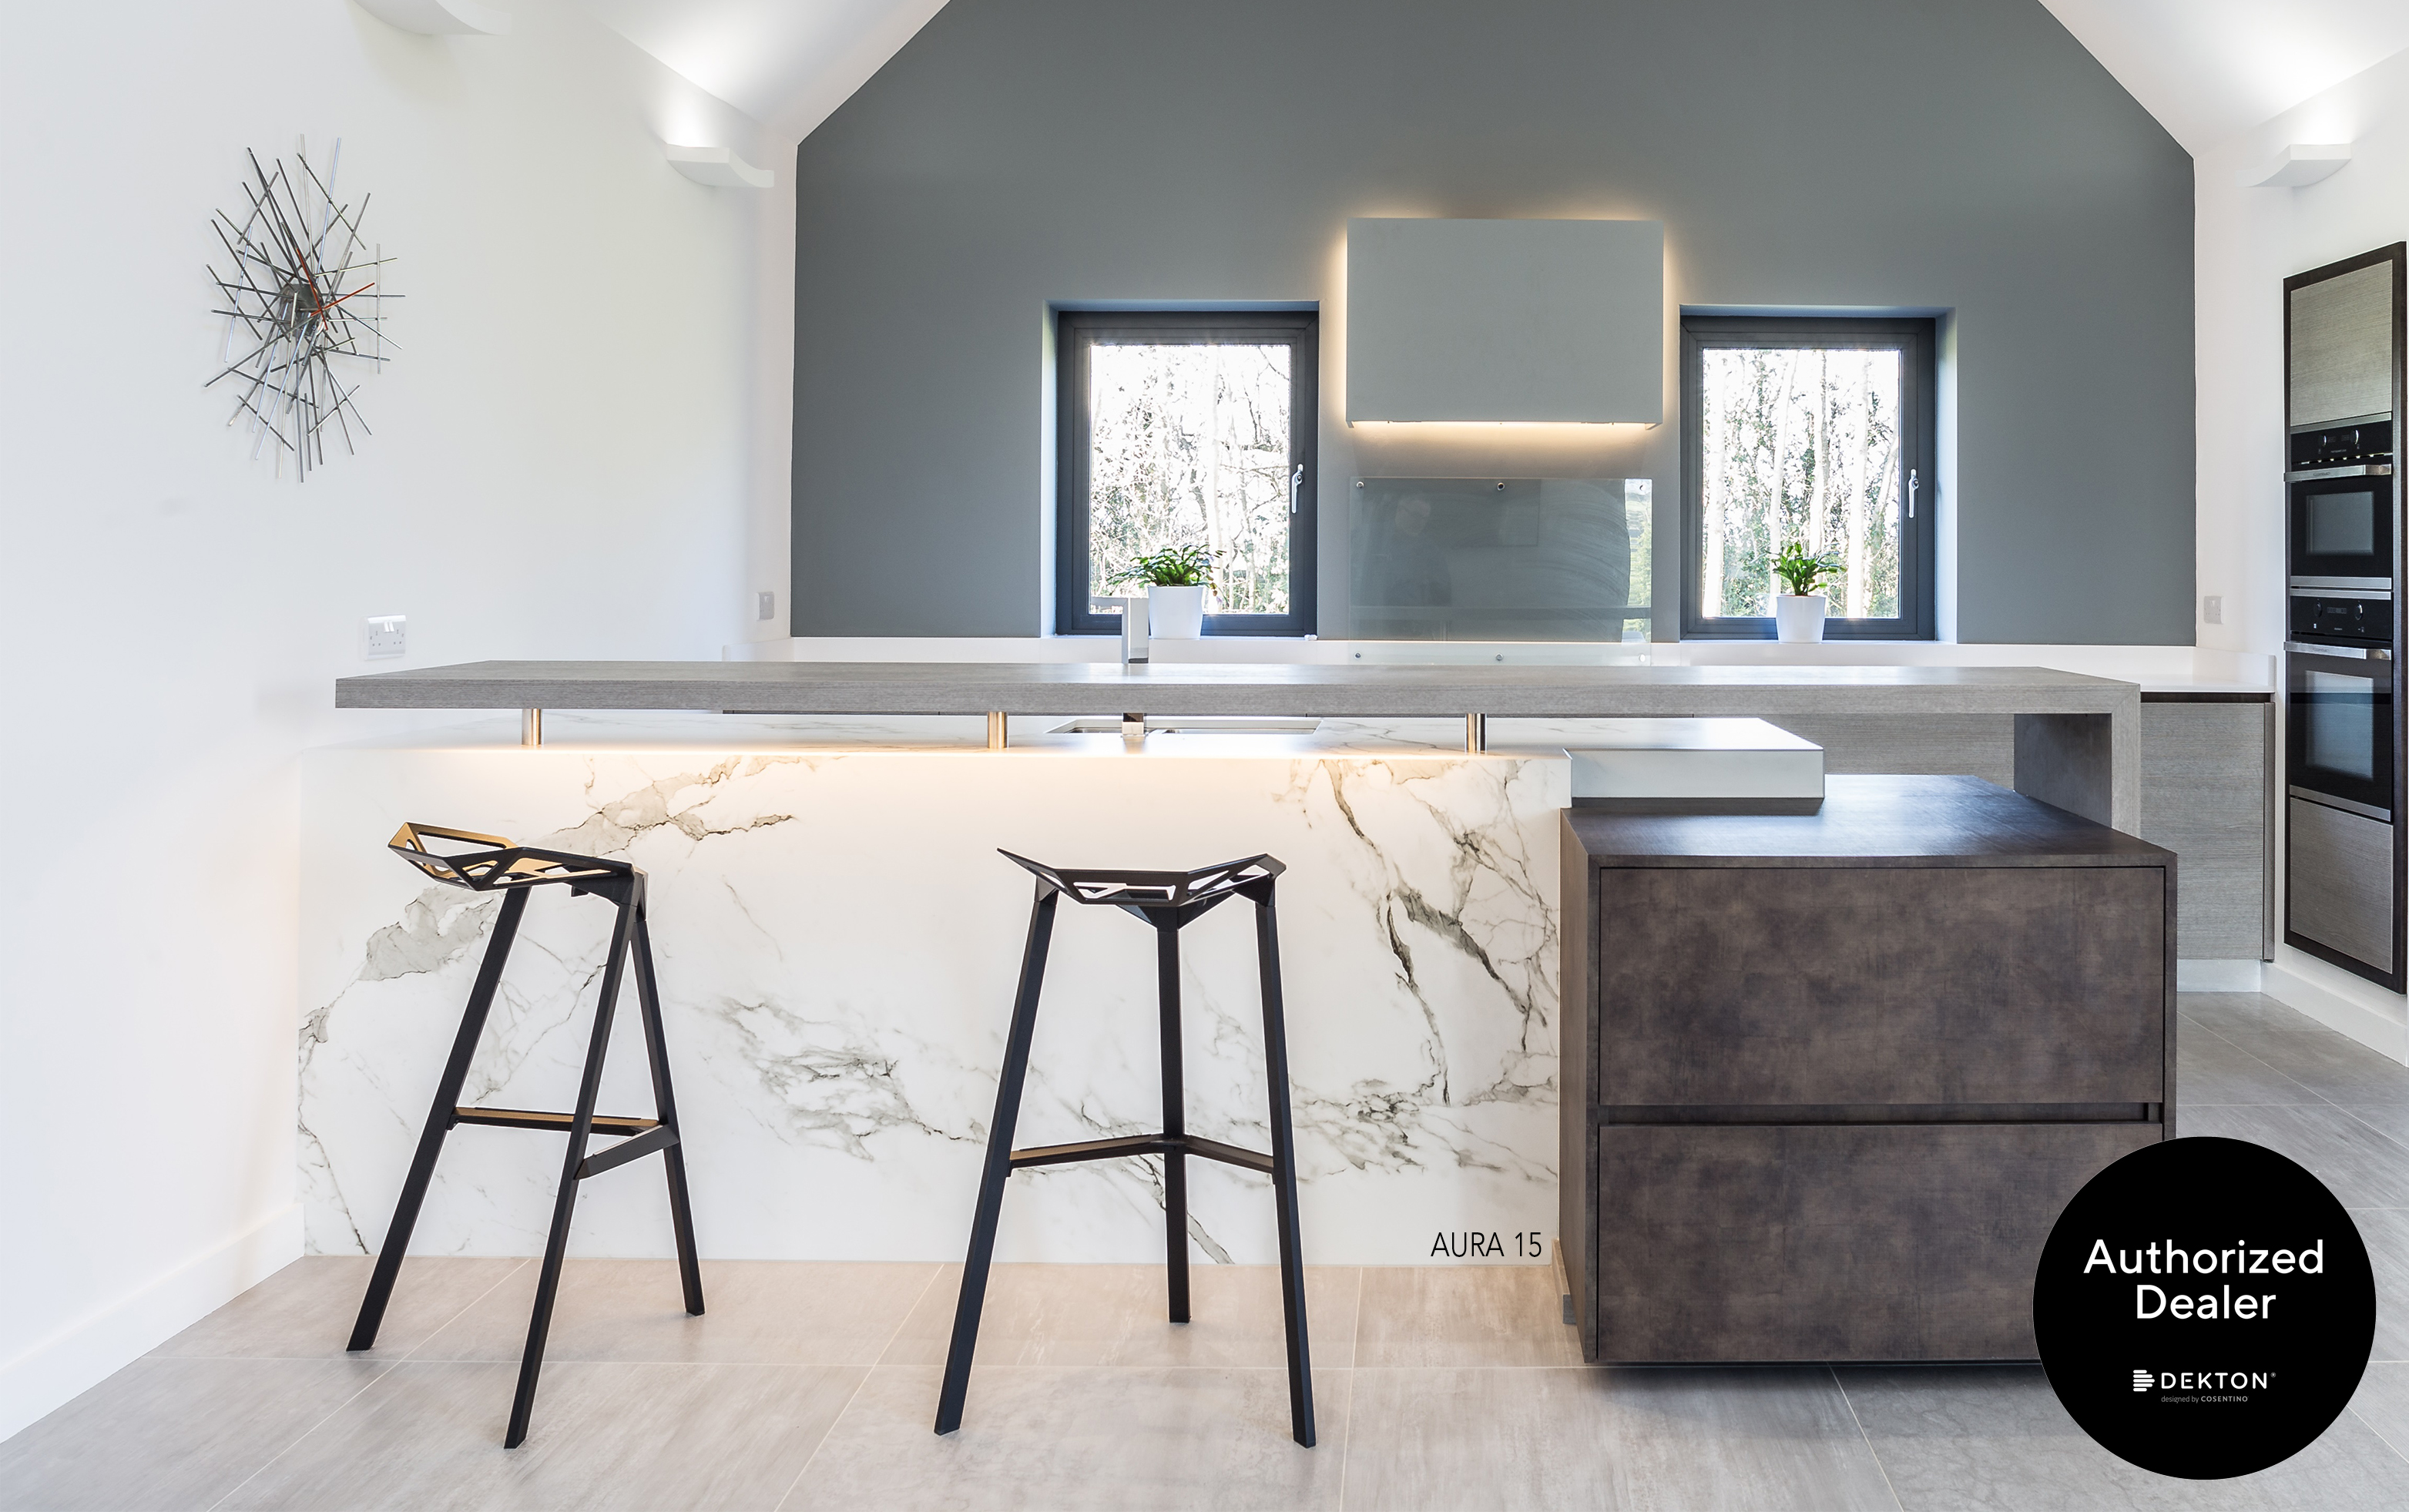 Dekton Authorised Dealer - Aurastone